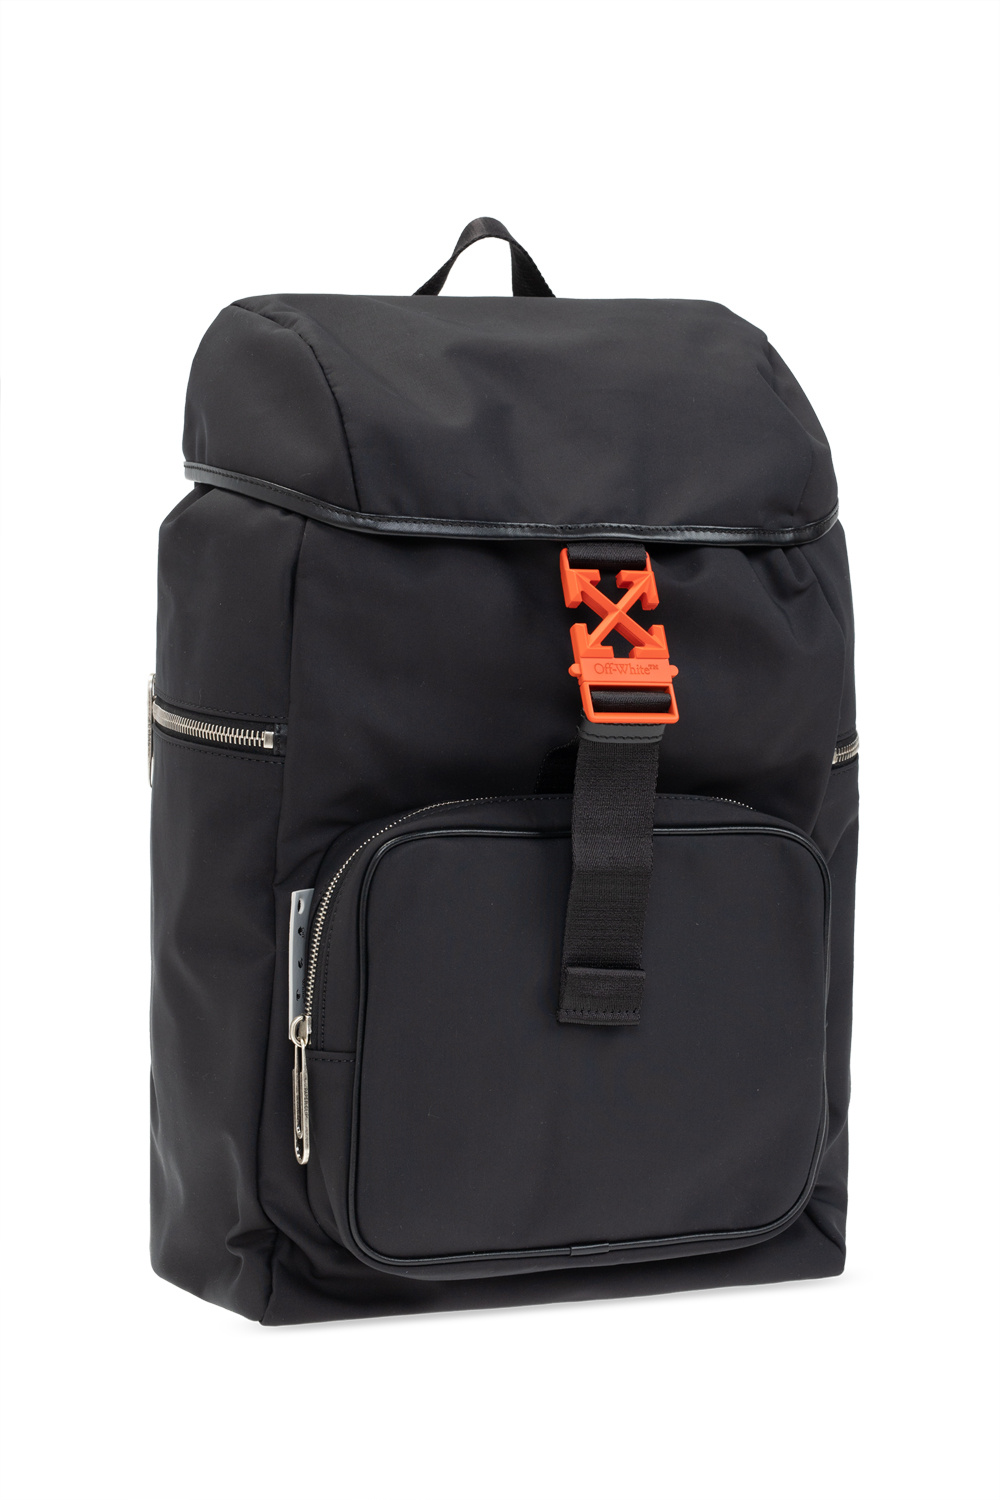 Off-White Backpack with multiple pockets